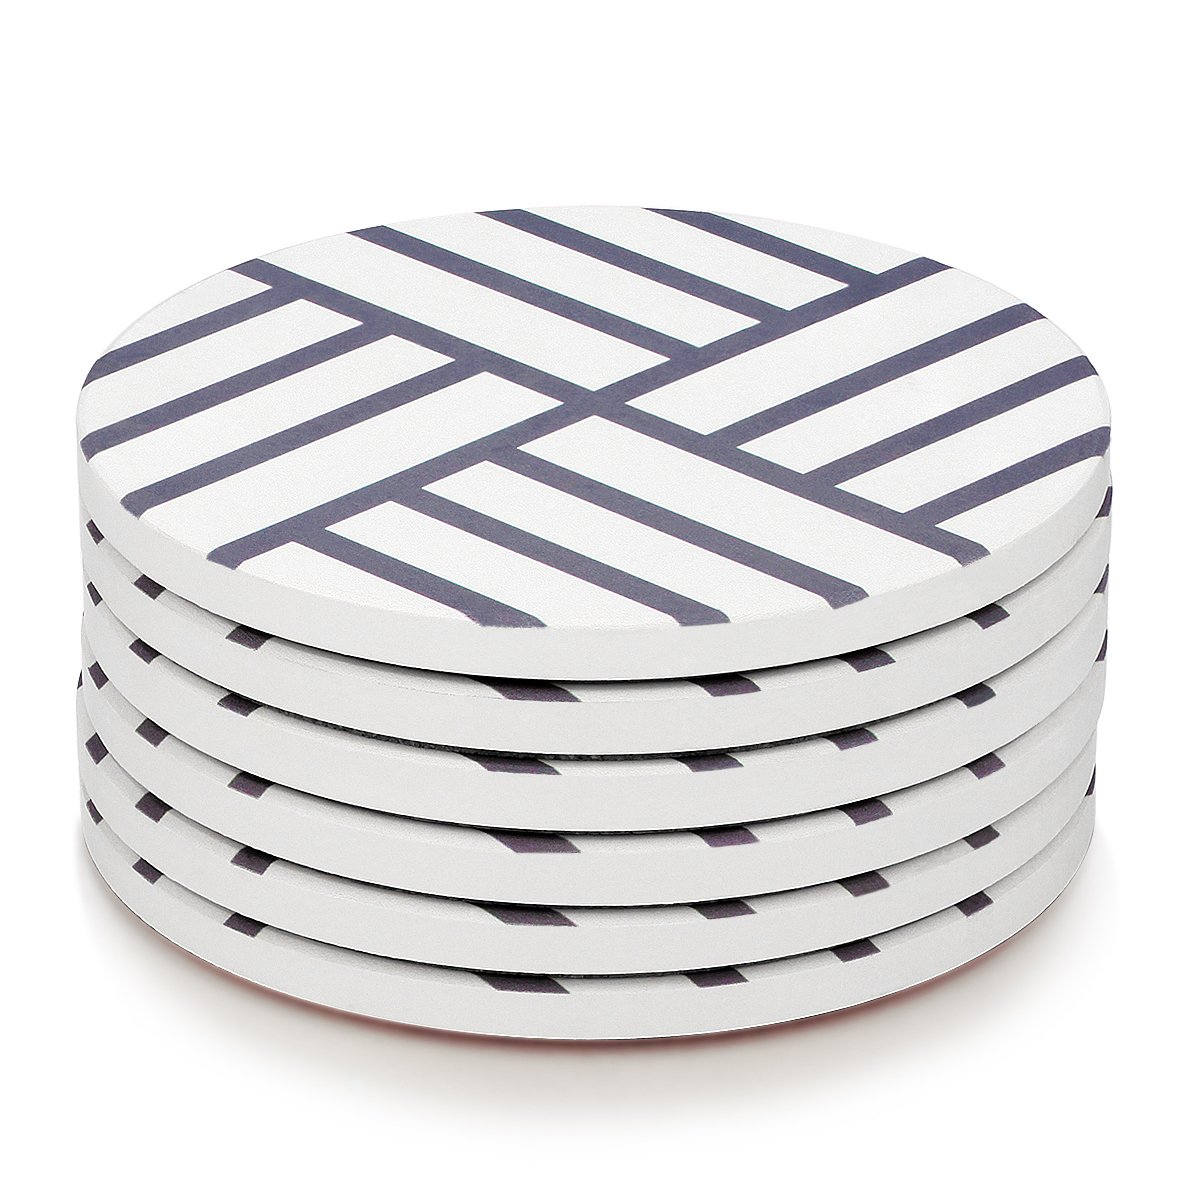 MIWARE Absorbent Stone Coaster Set - 6 Packs Coasters for Drinks, Grey Lines Style